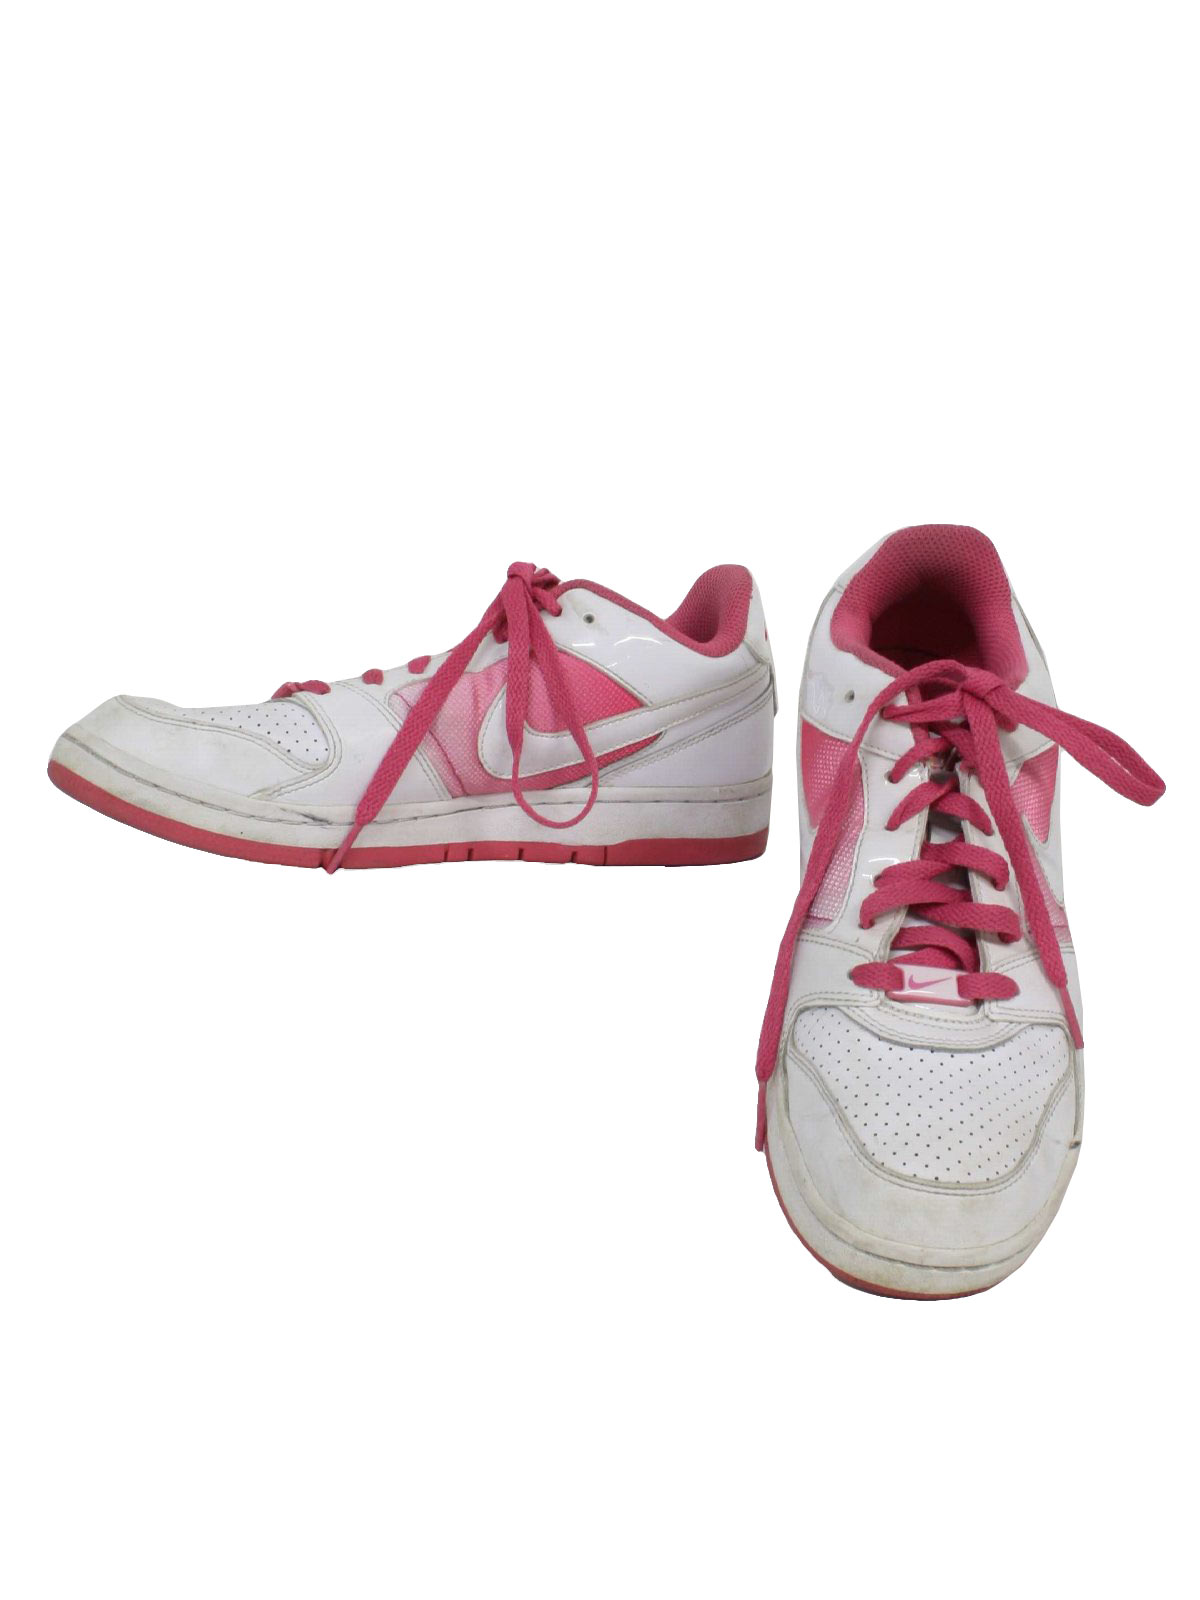 90's Vintage Shoes: 90s -Nike- Womens off white and shaded pink classic  swoosh design nike air tennis shoes with flat bottom and pink embroidered - Nike- at ...